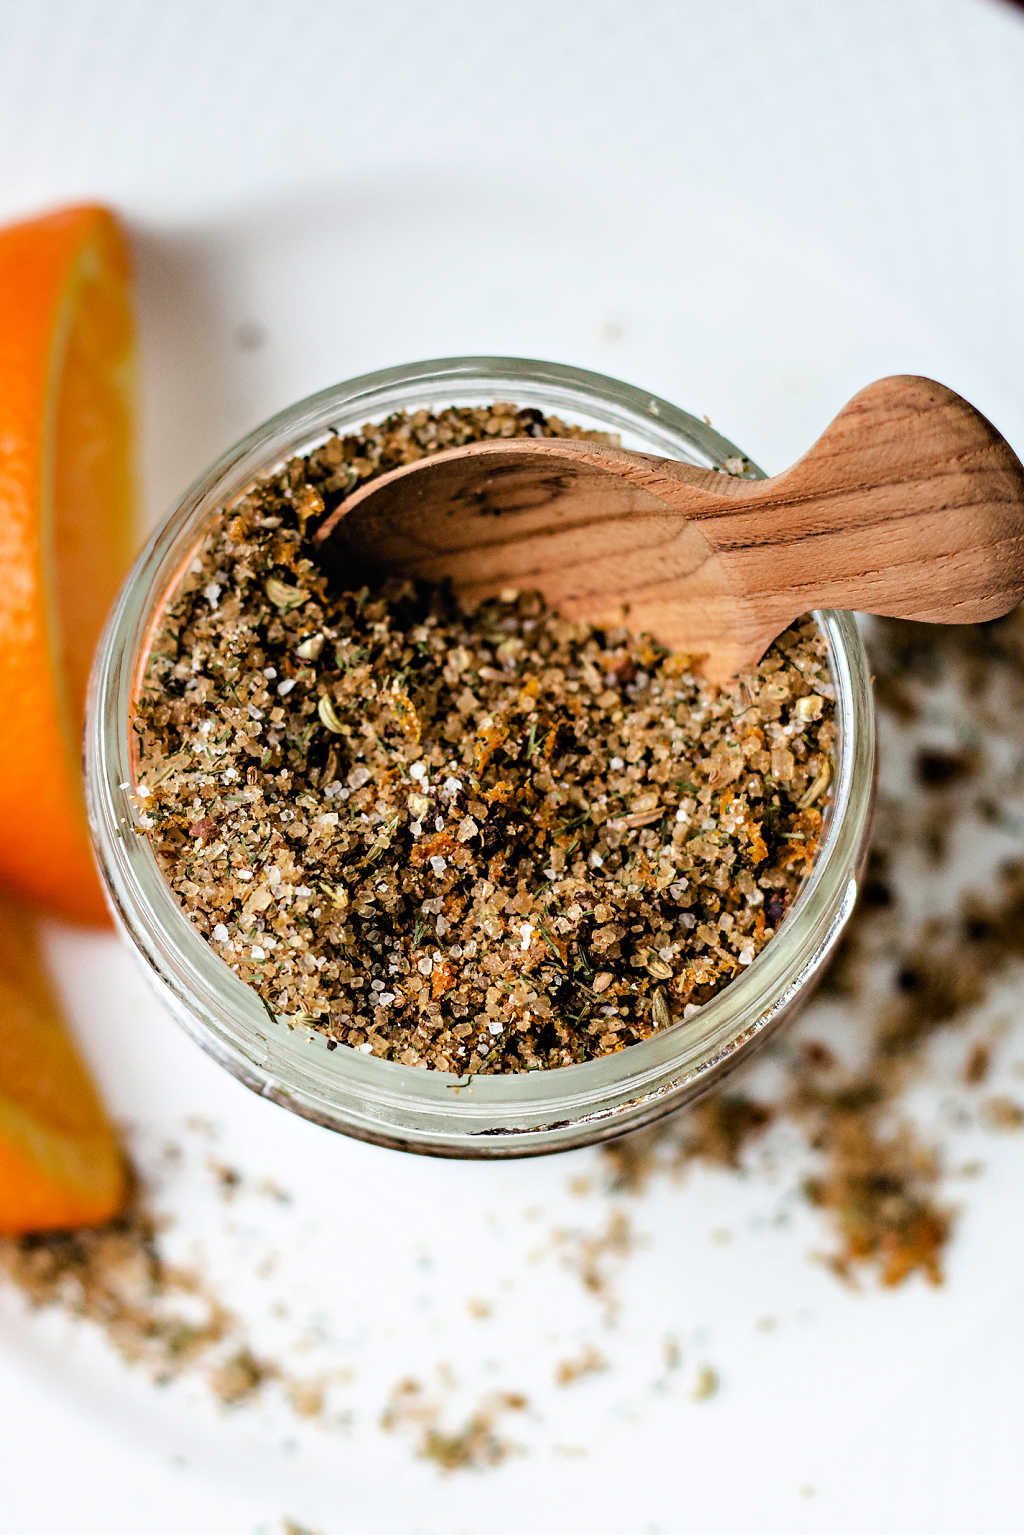 citrusy salmon rub in a small mason jar with a wooden spoon on a table.